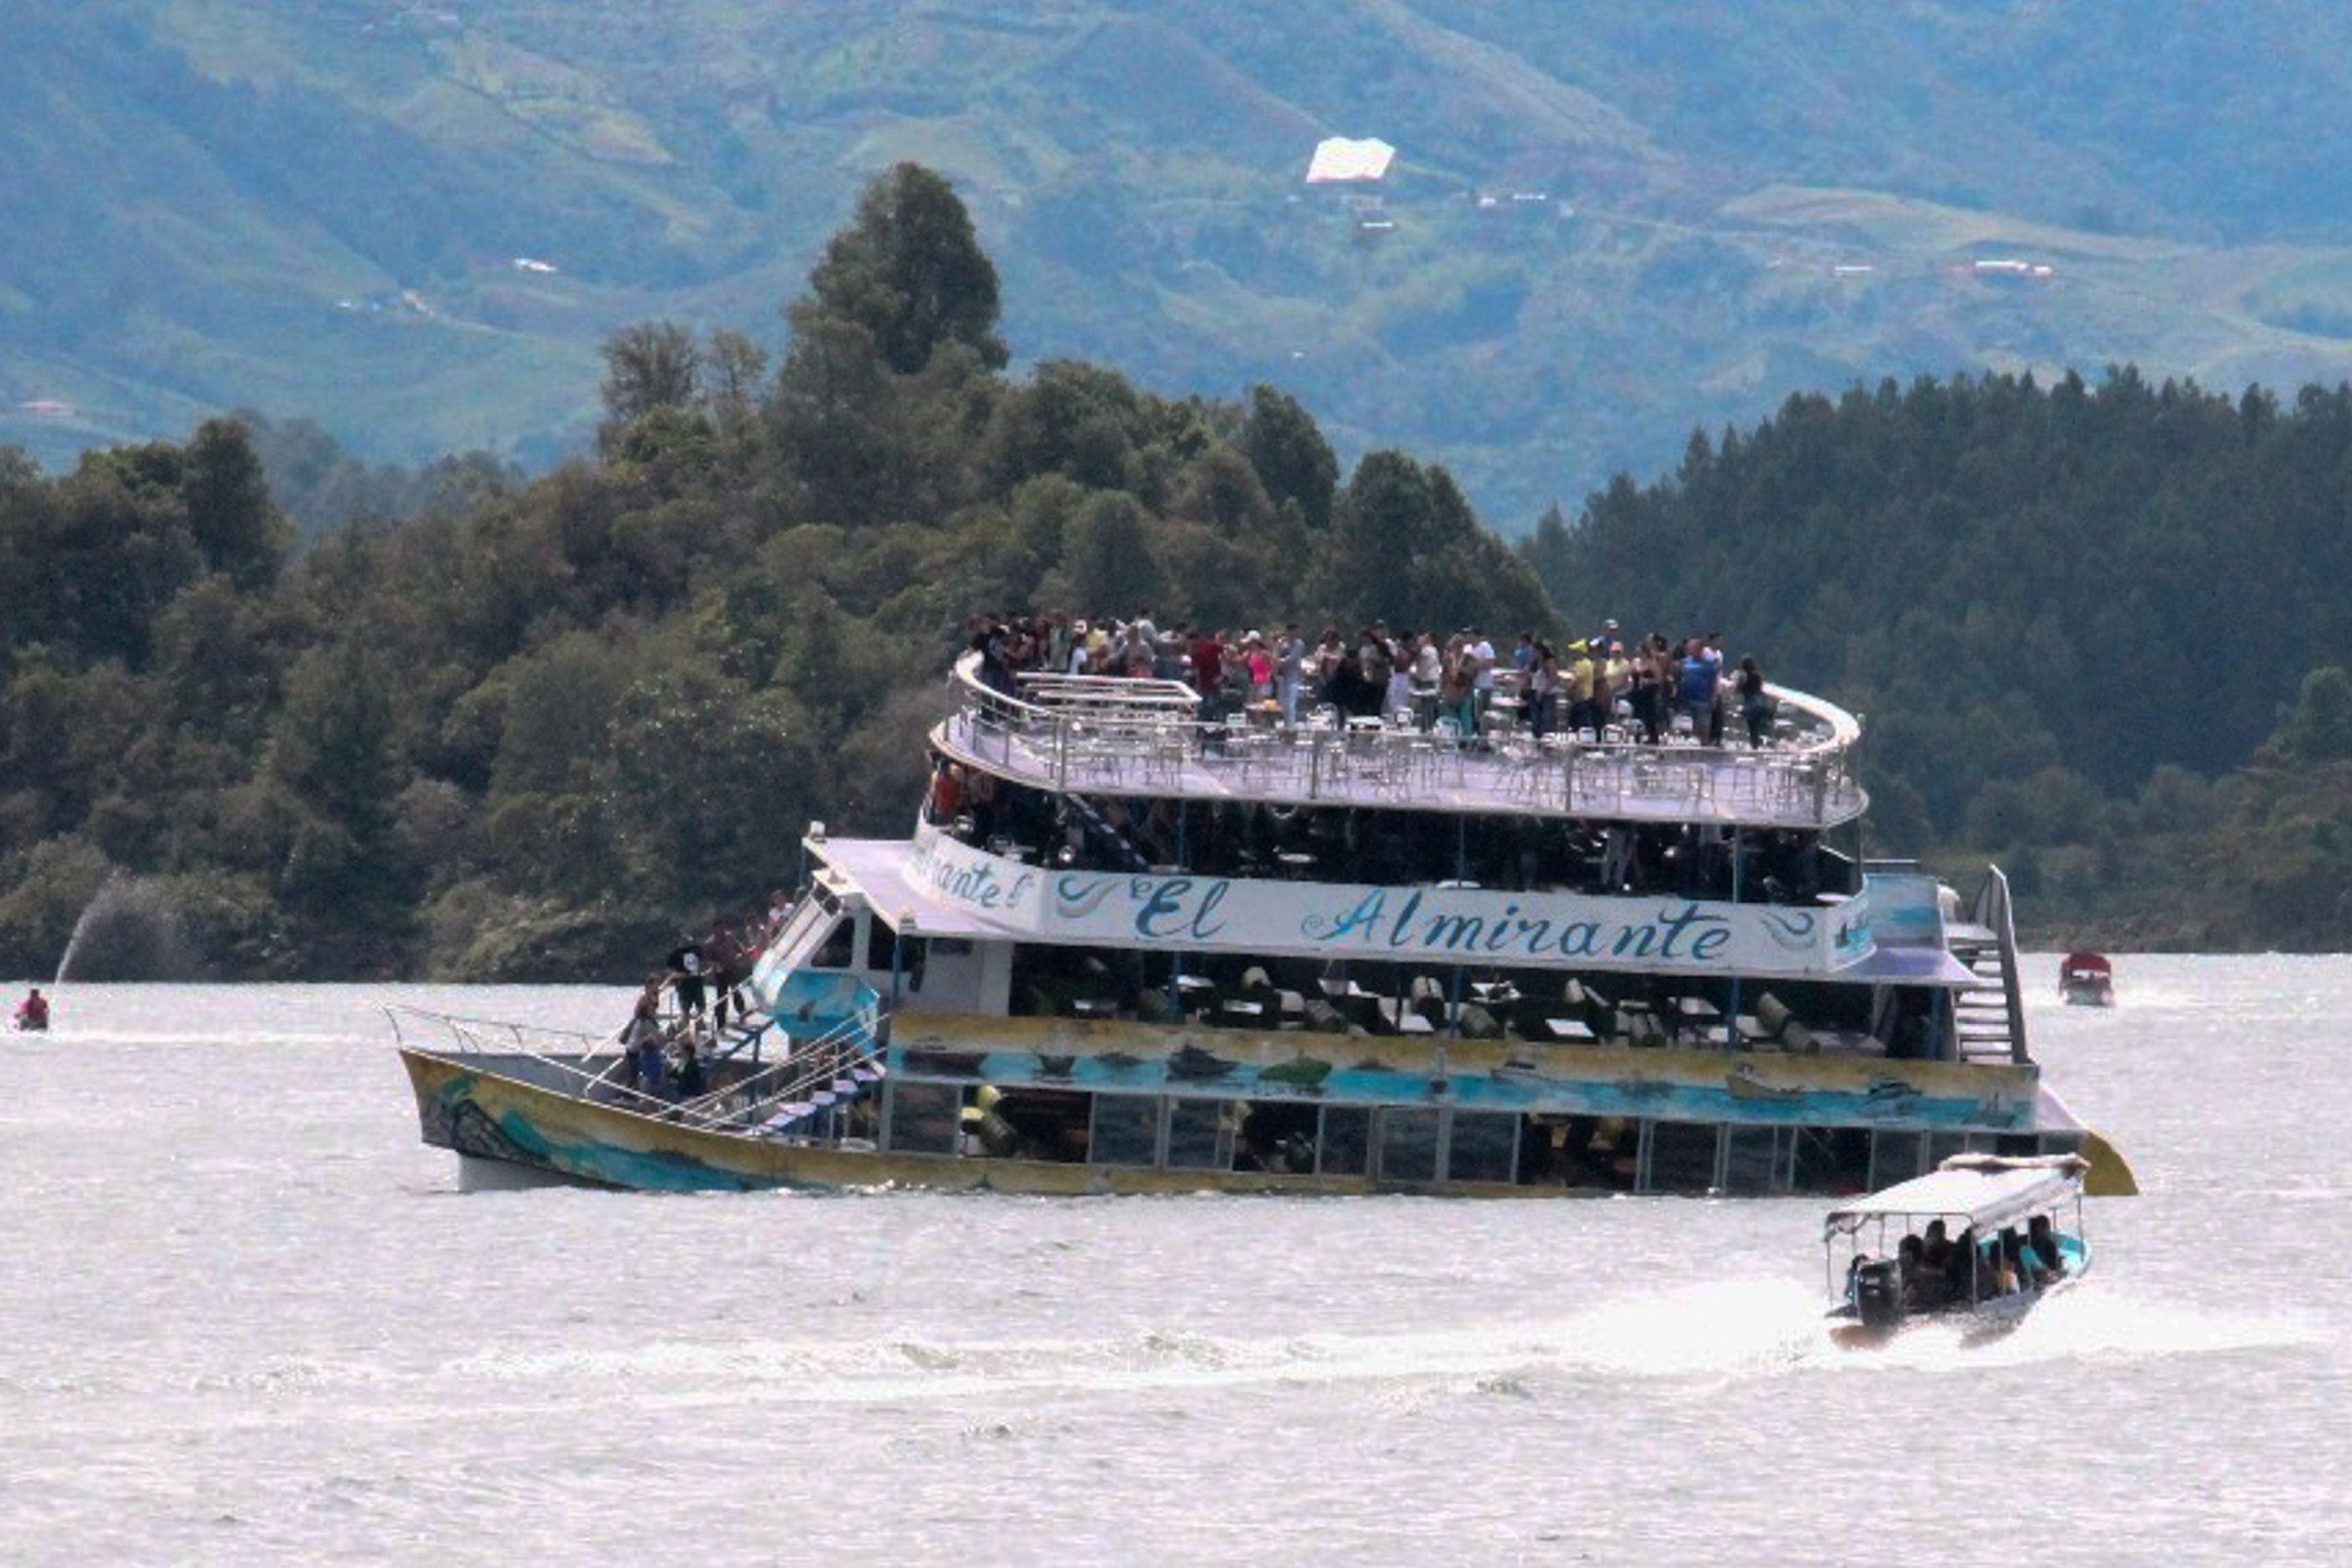 The tourist boat Almirante is seen in the Reservoir of Penol in Guatape municipality in Antioquia  on June 25, 2017. At least nine people were dead and 28 missing after a tourist boat sank for unknown reasons in a reservoir in Colombia Sunday, authorities said, sharply raising an earlier toll. / AFP PHOTO / Juan QUIROZ        (Photo credit should read JUAN QUIROZ/AFP/Getty Images)